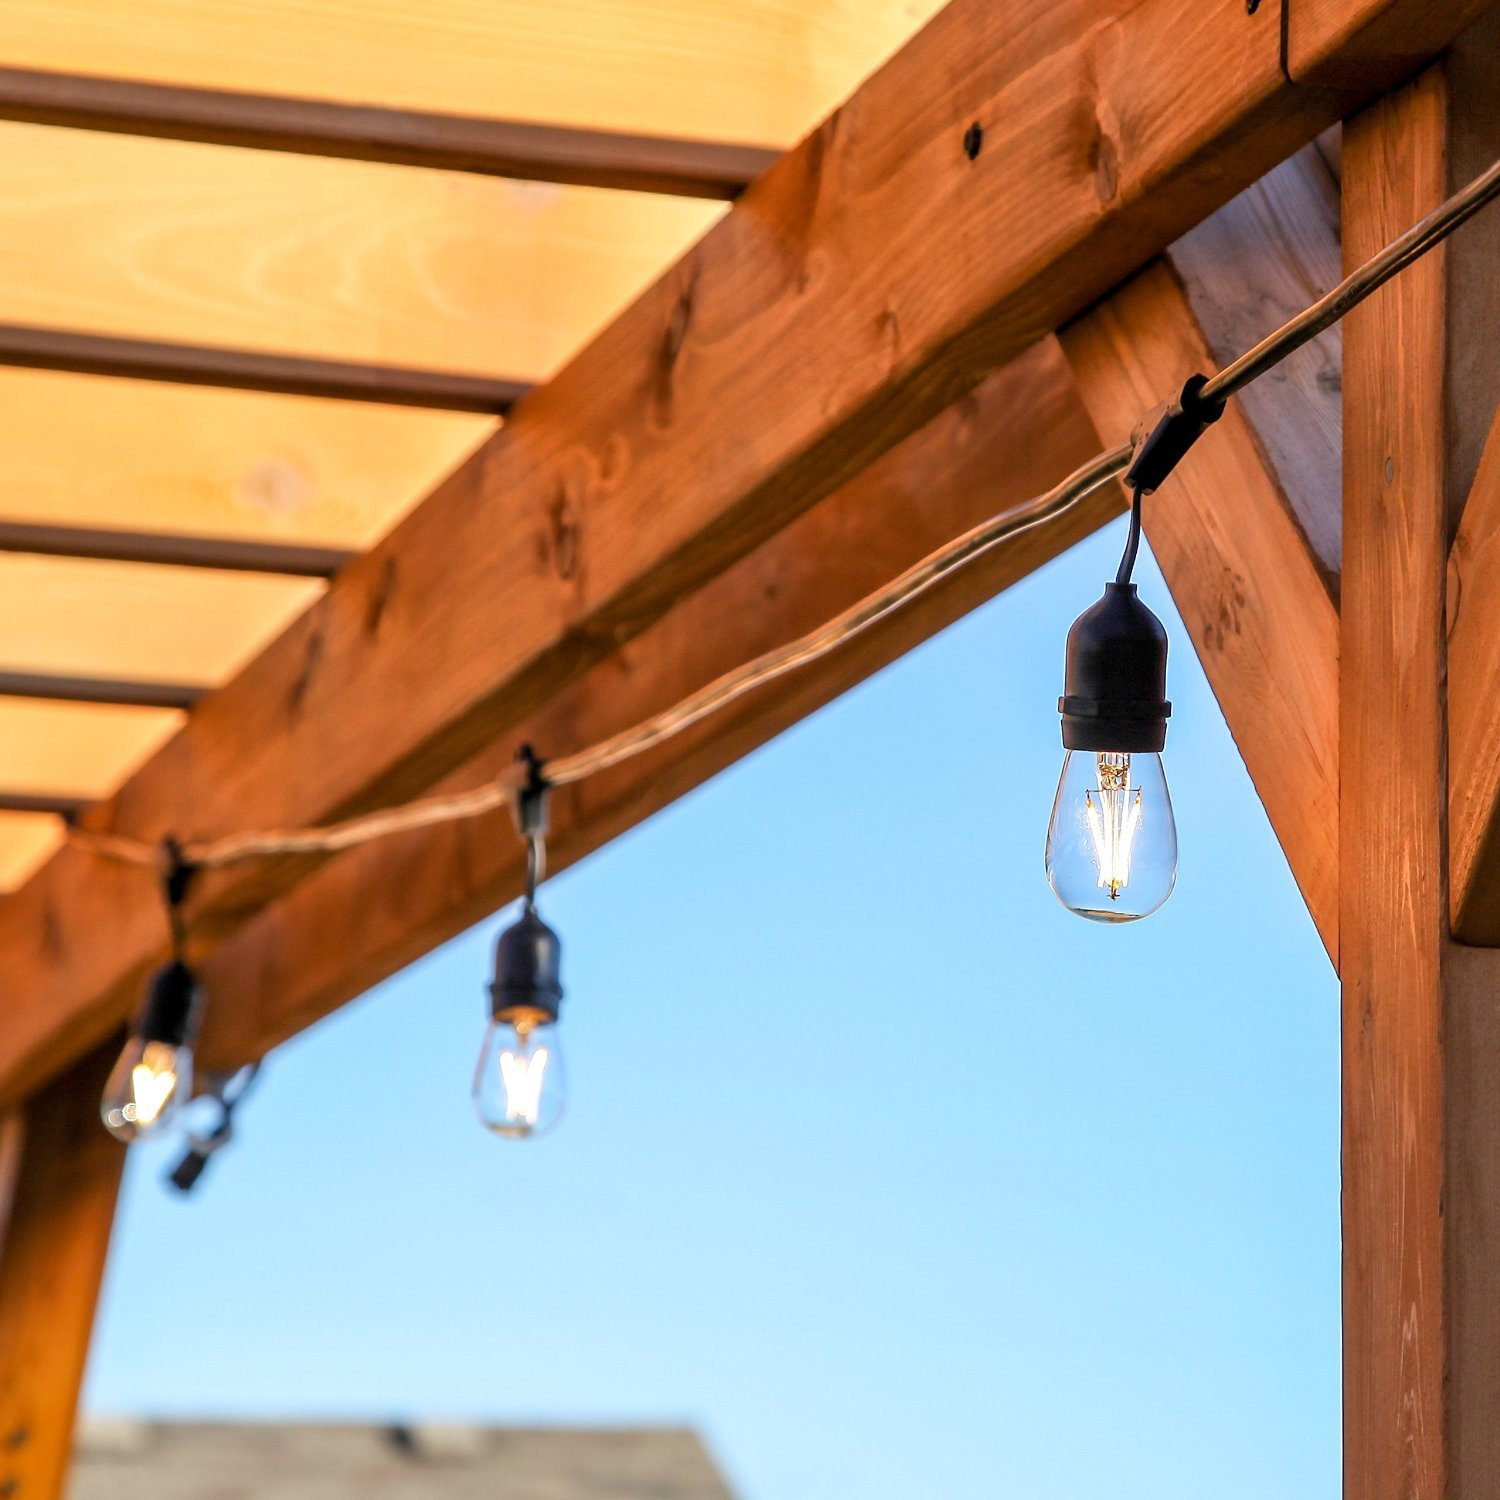 Brightech ambience pro led outdoor string lights hanging patio brightech ambience pro led outdoor string lights hanging patio lighting heavy duty weatherproof 1w filament edison bulbs 48 ft cafebistro garden aloadofball Images